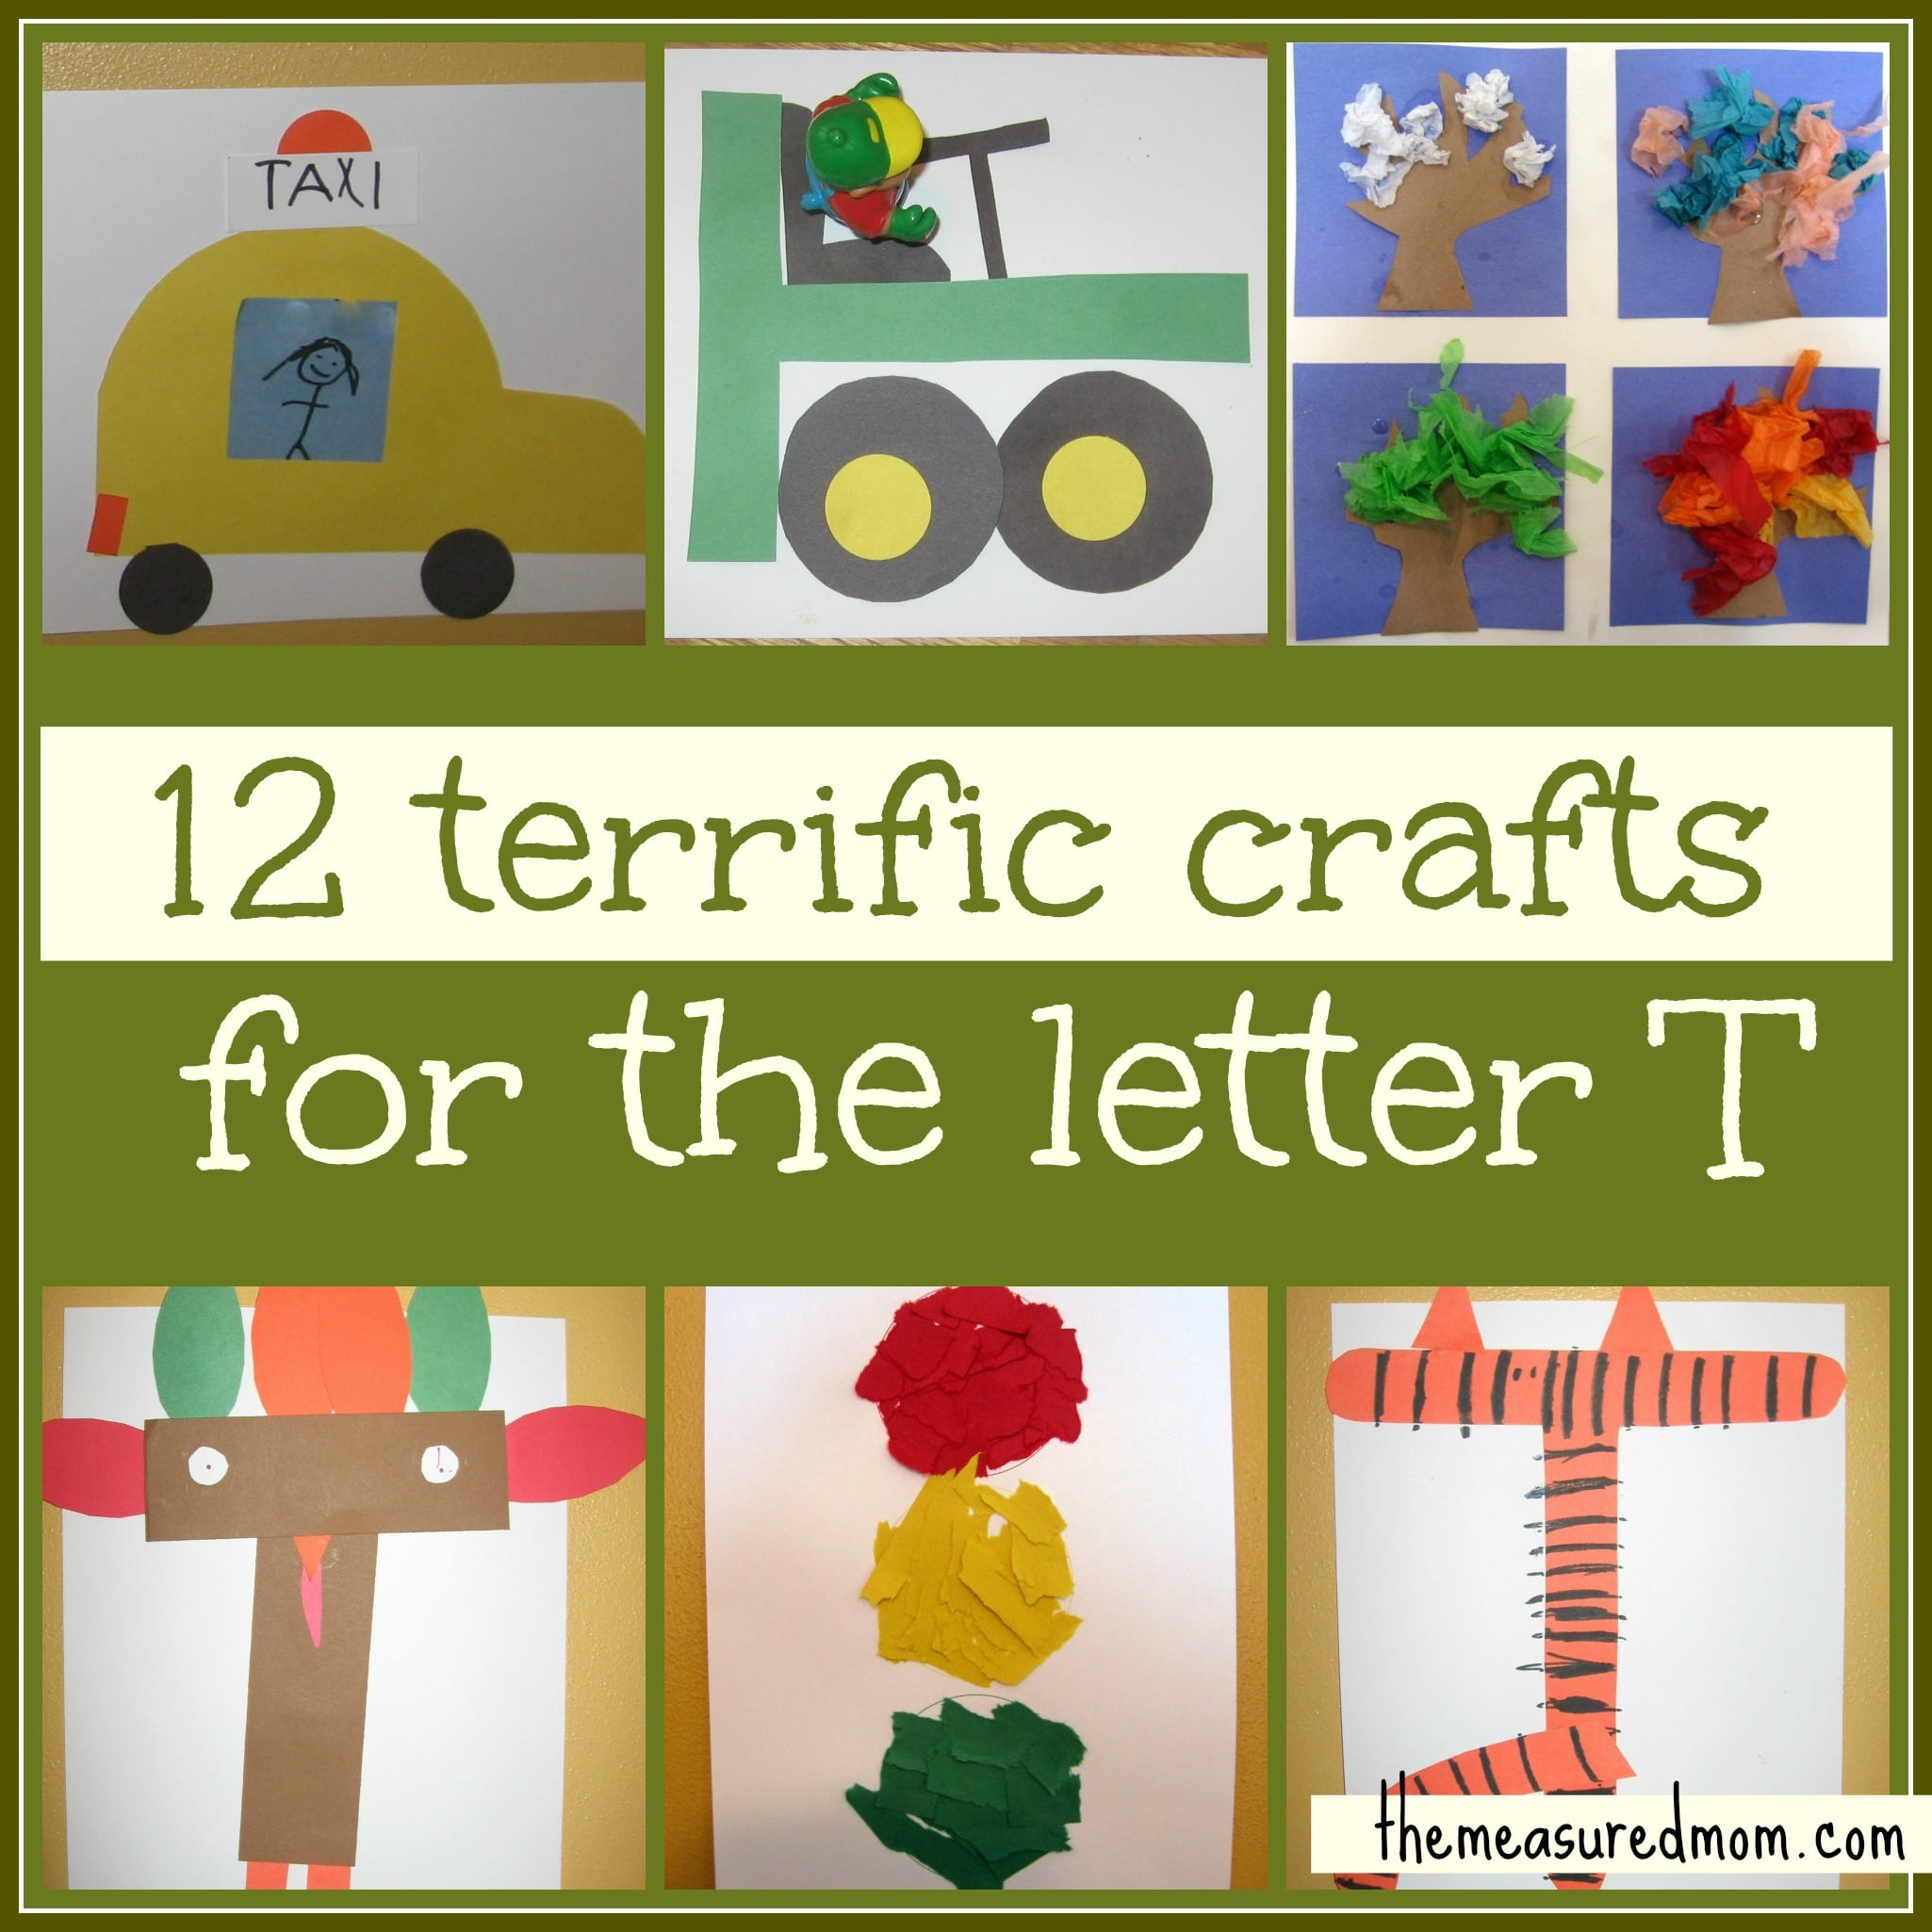 preschool crafts for letter t the measured mom. Black Bedroom Furniture Sets. Home Design Ideas